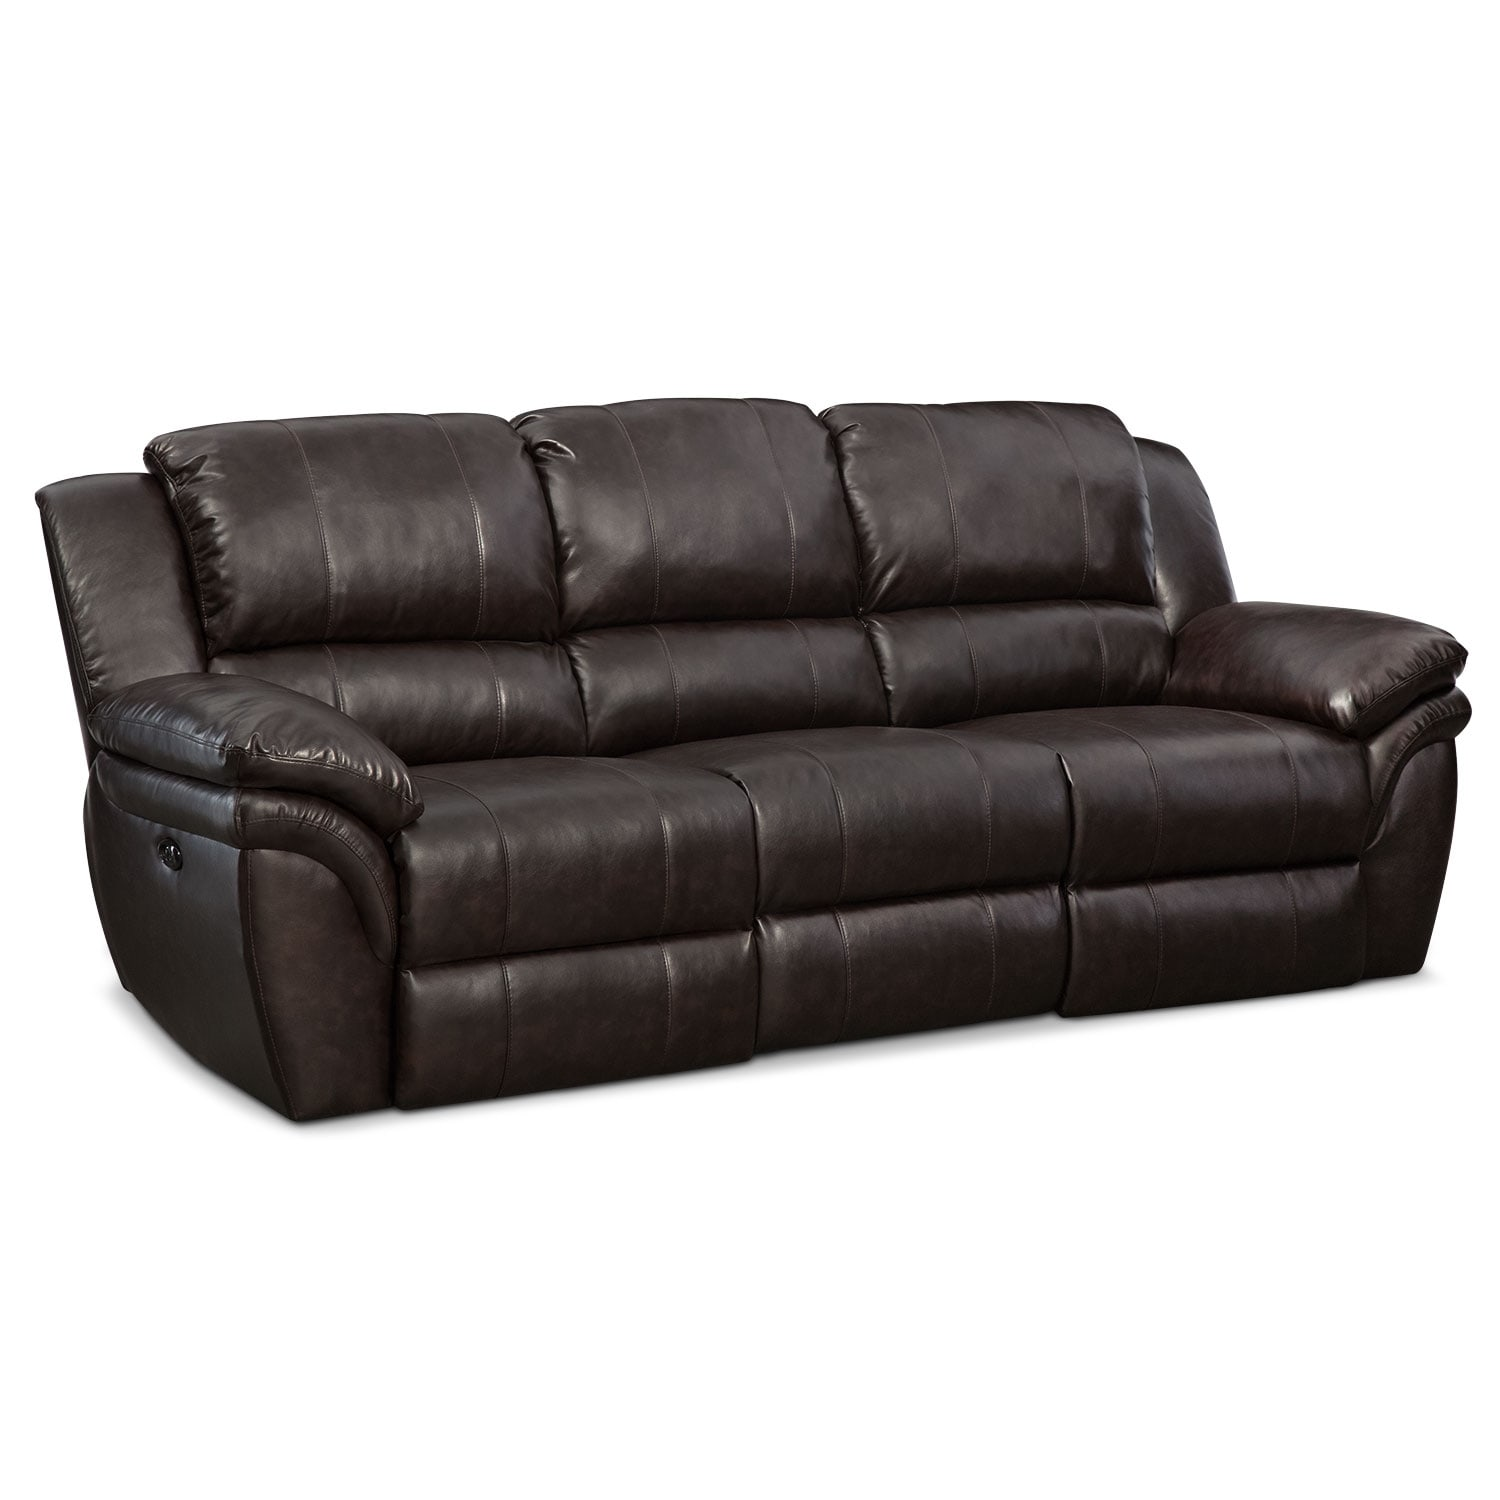 Living Room Furniture - Aldo Power Reclining Sofa